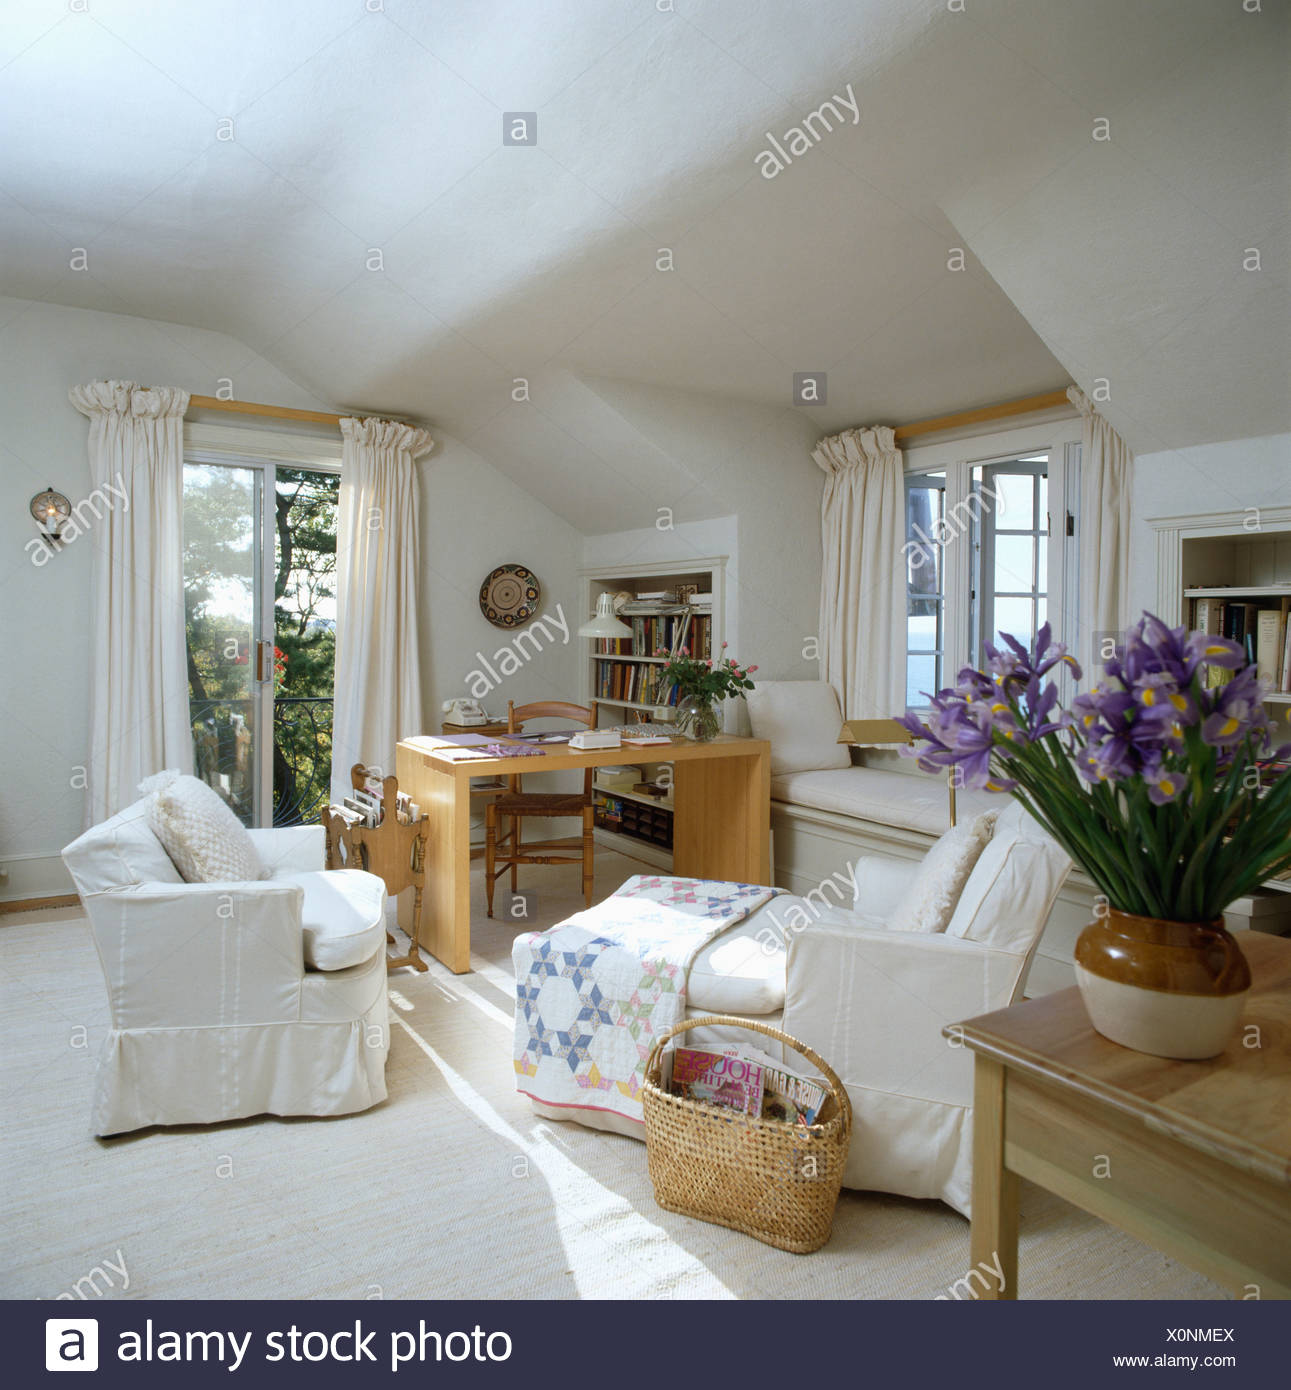 White Armchair And Patchwork Quilt On Chaiselongue In White Attic Sitting Room With Study Corner Stock Photo Alamy